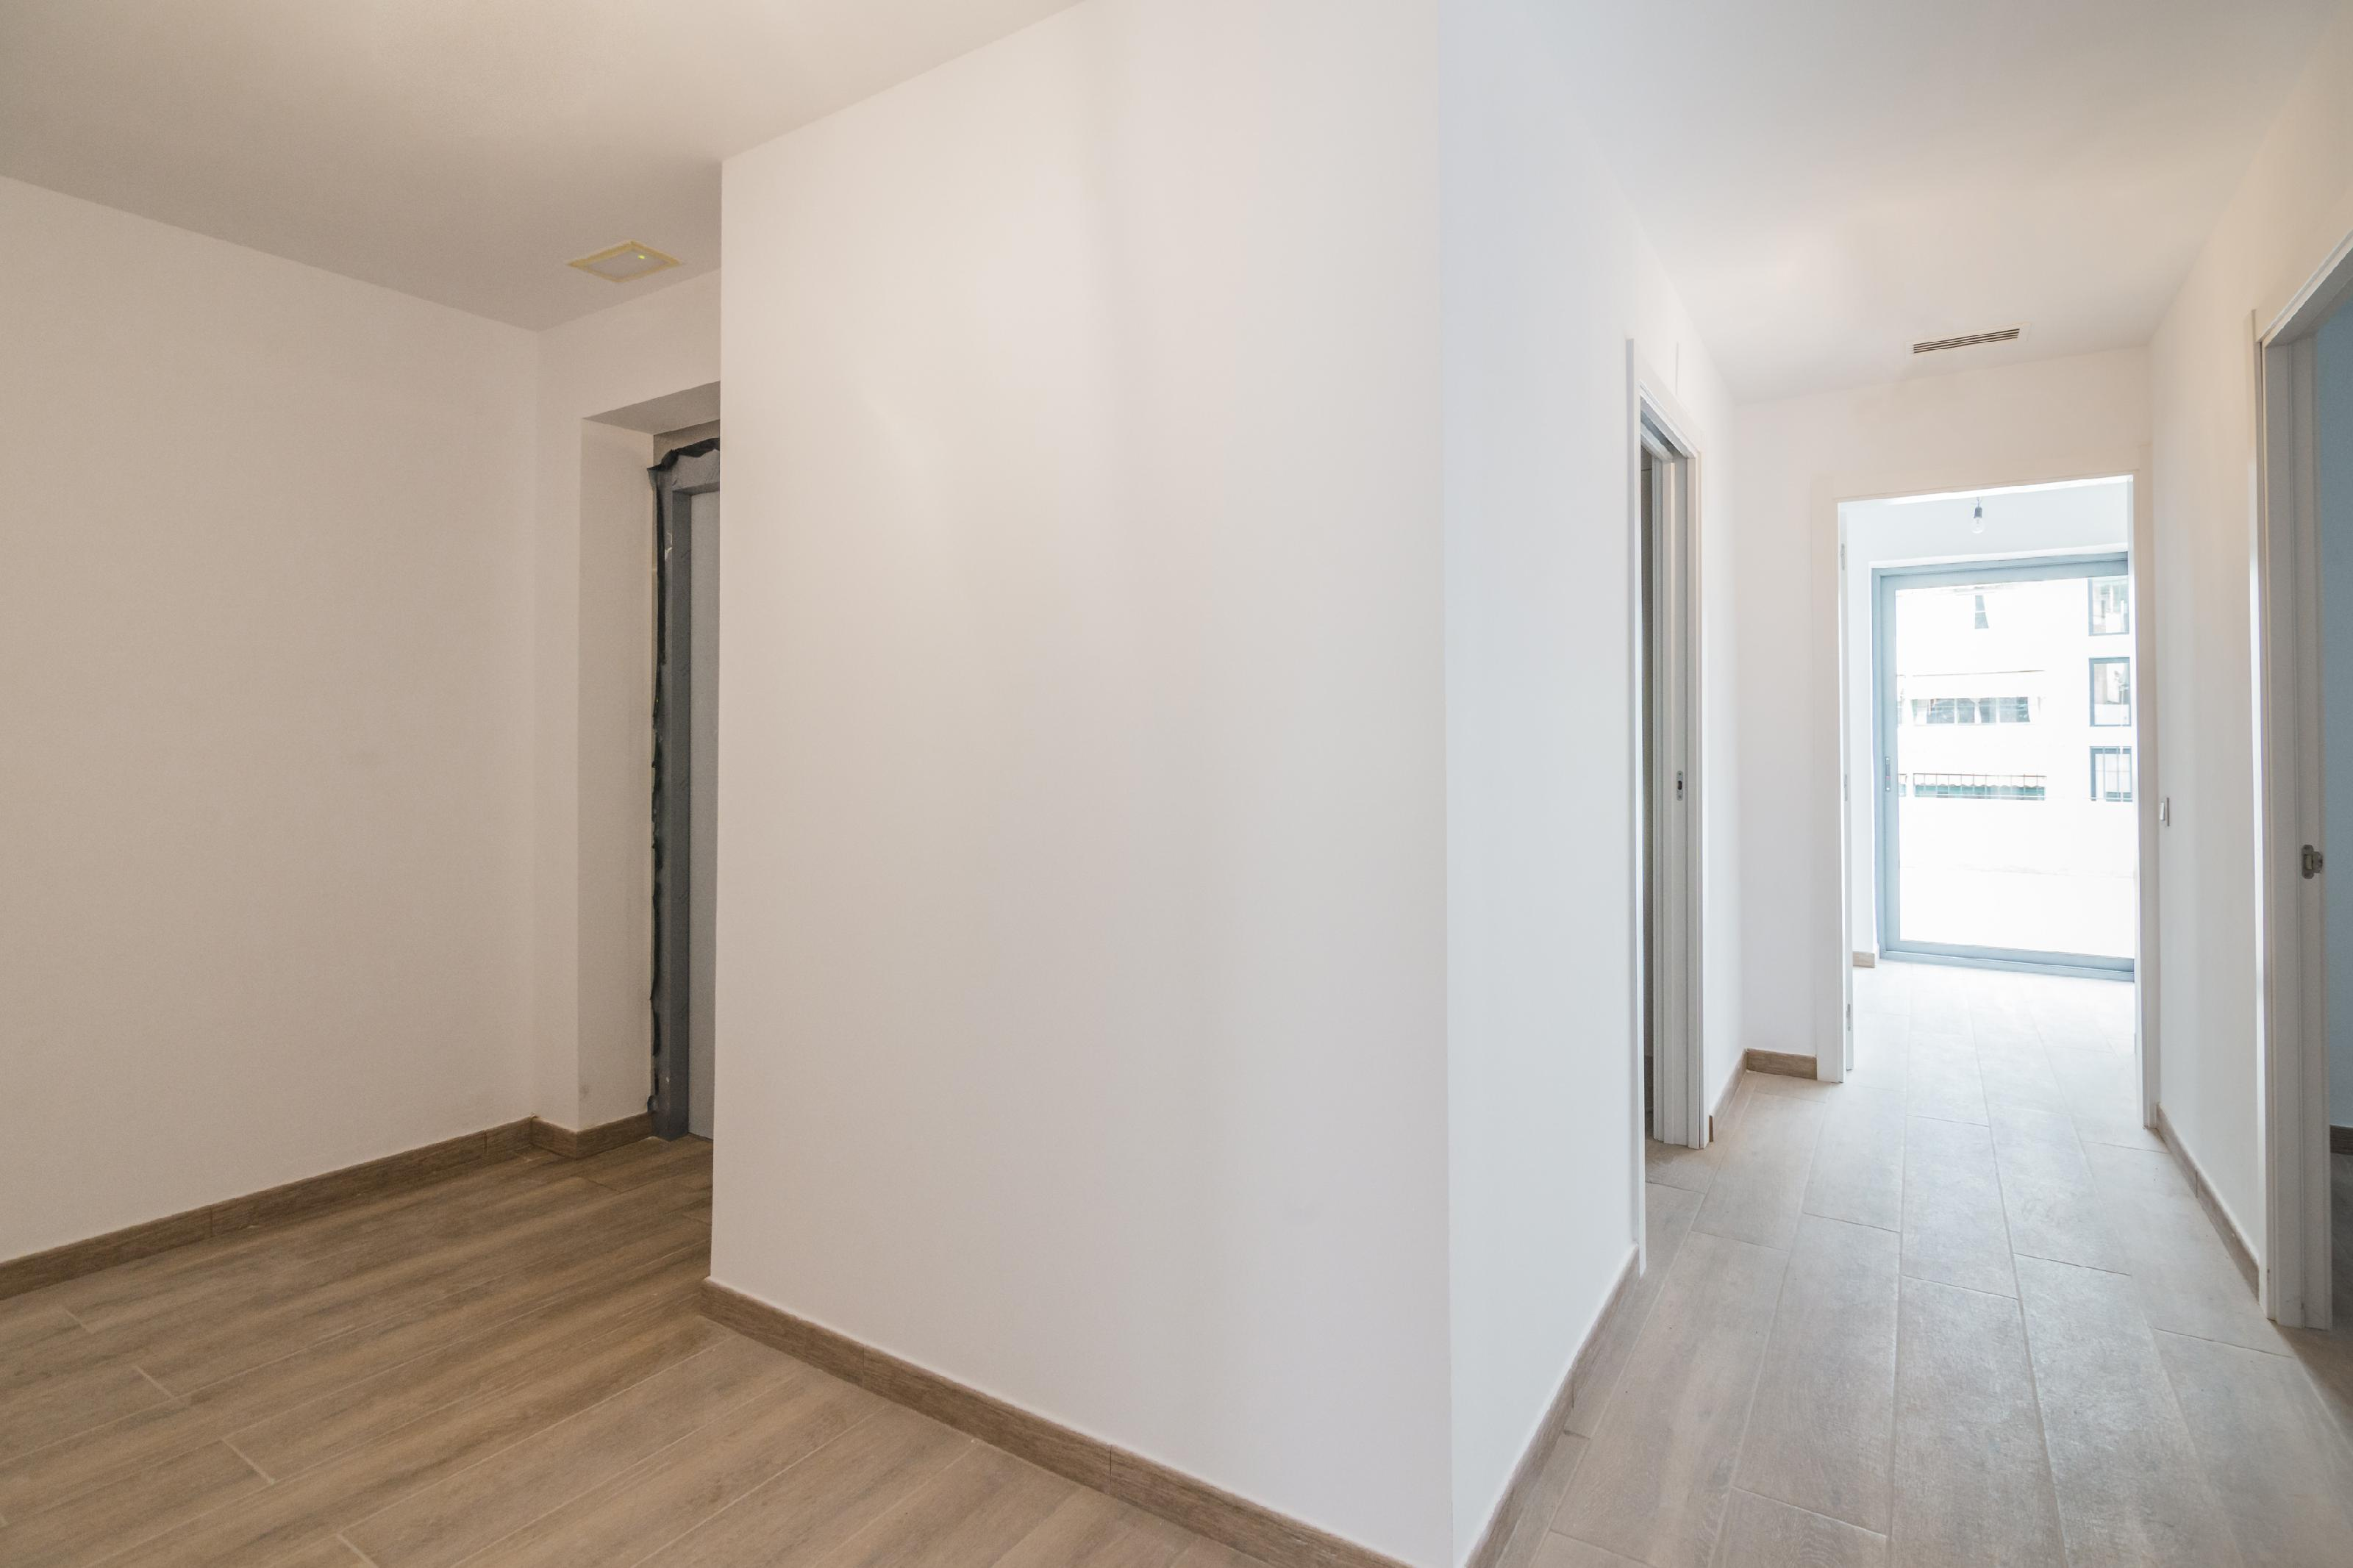 220653 Penthouse for sale in Sarrià-Sant Gervasi, Sant Gervasi-Galvany 14